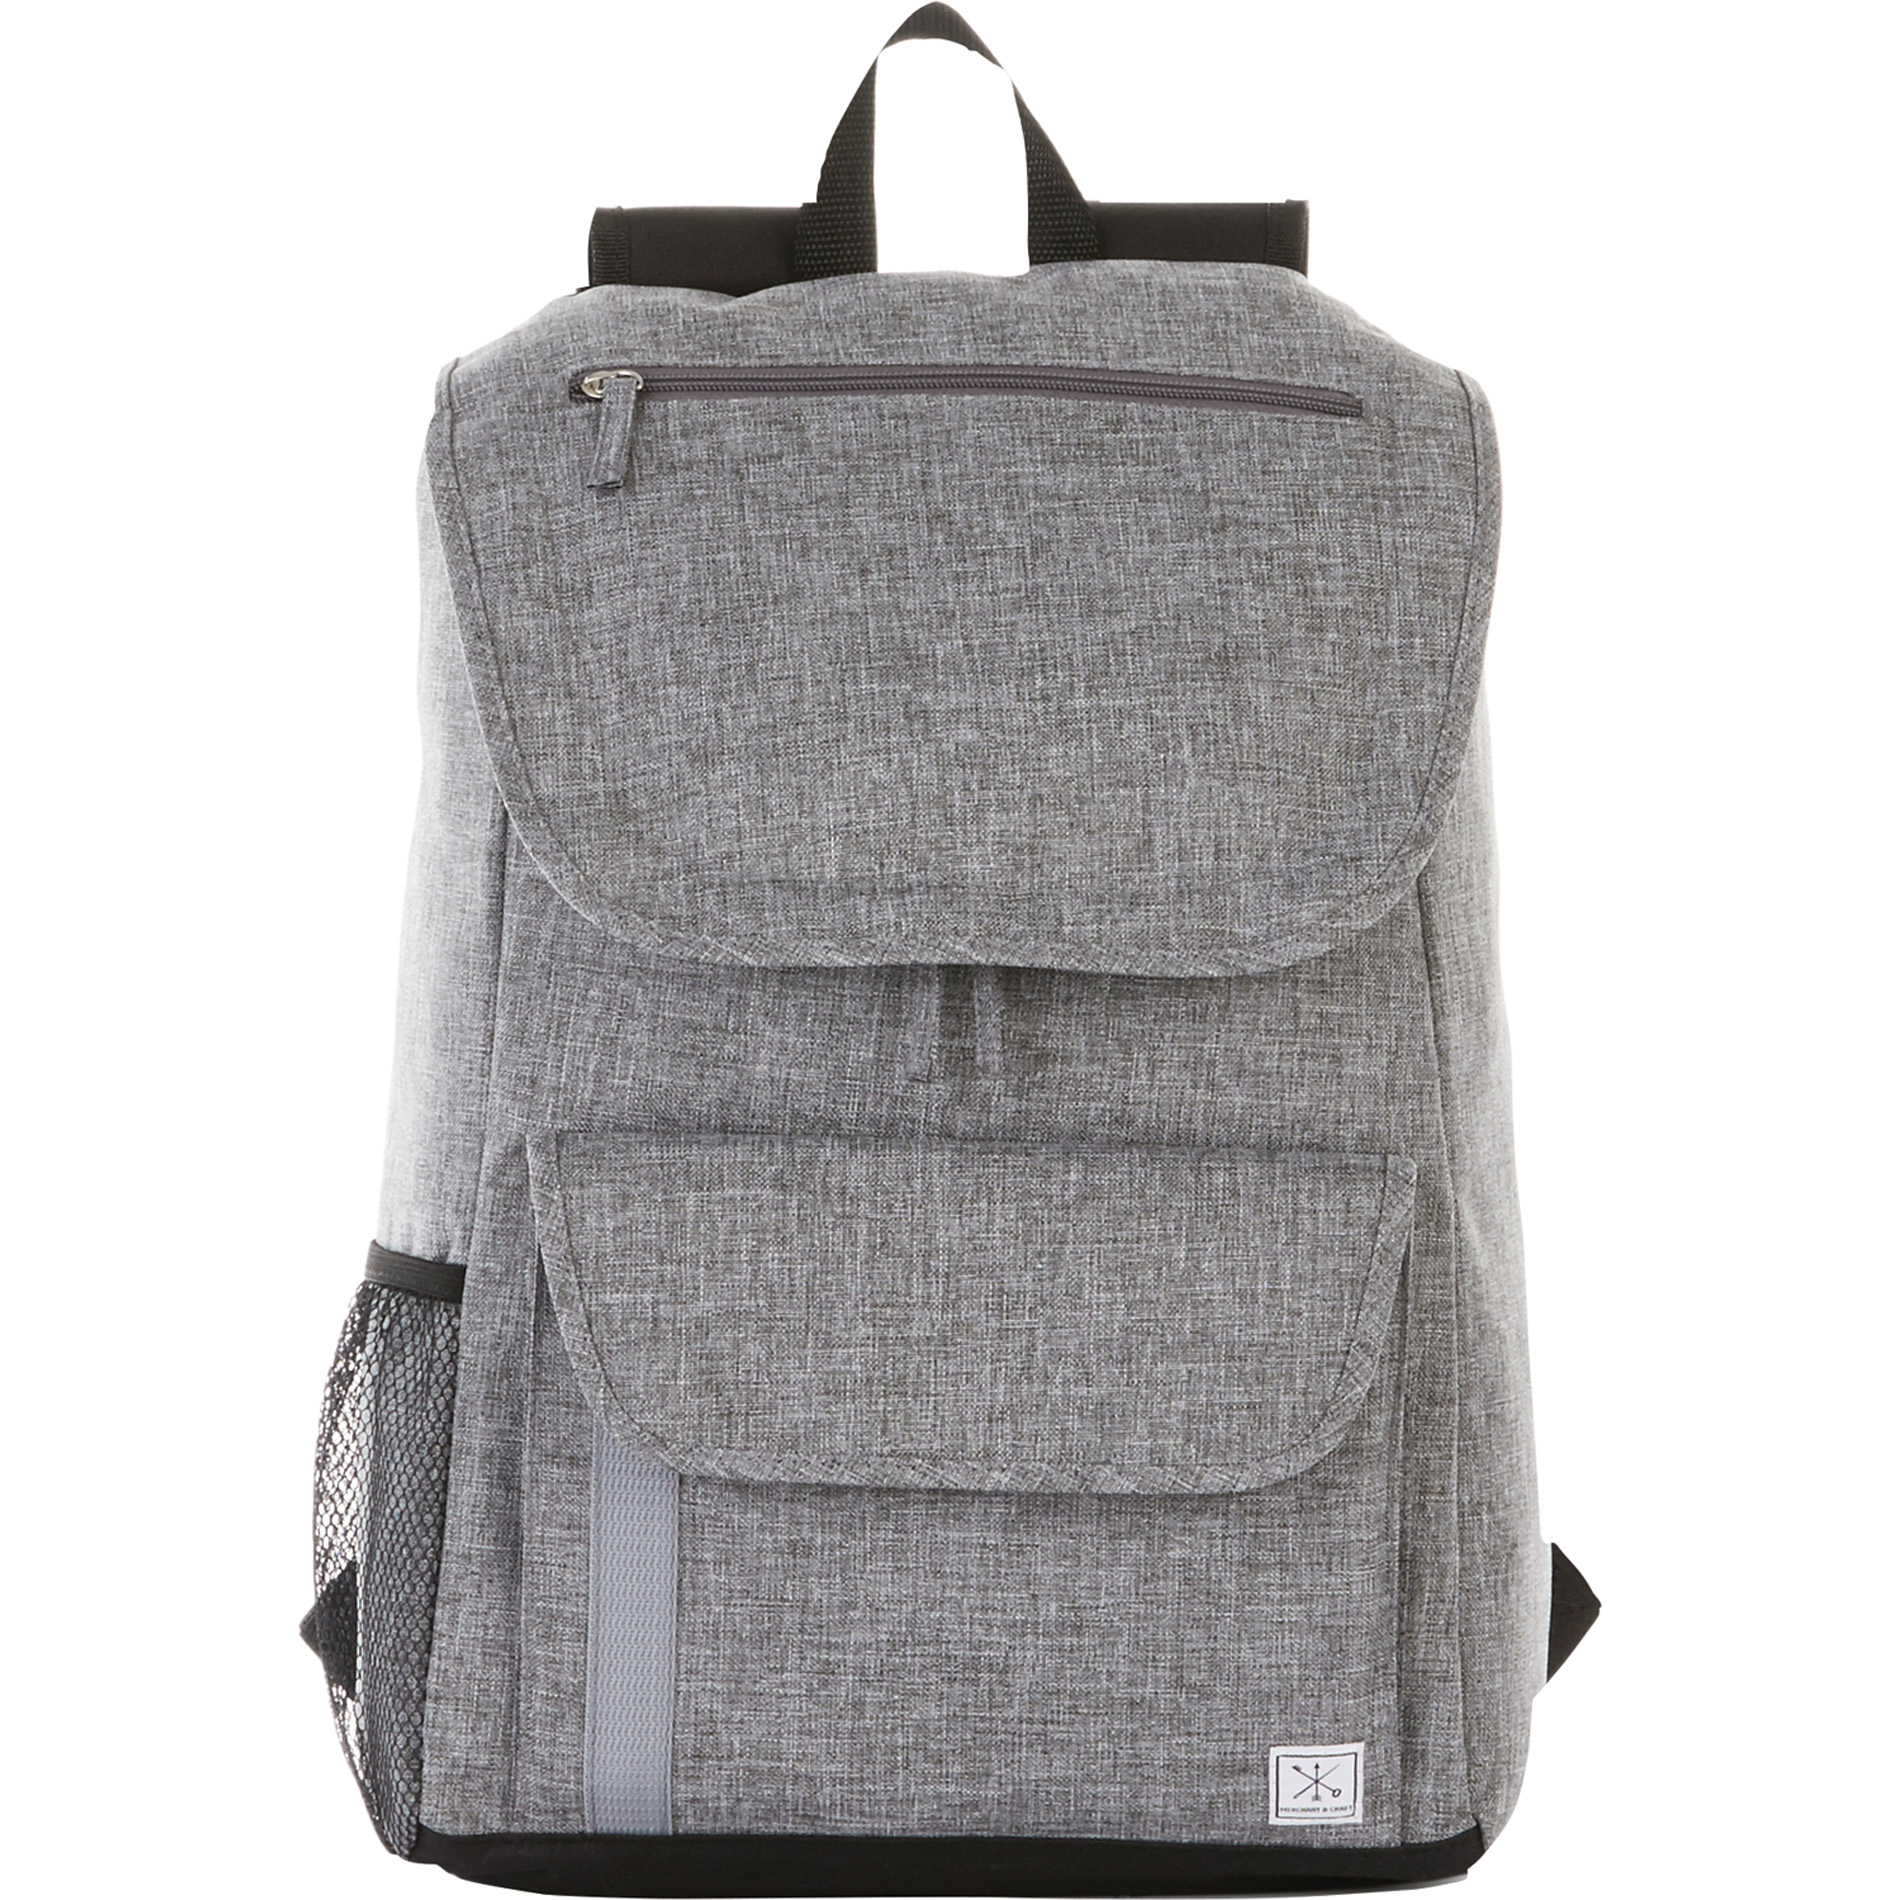 "Merchant & Craft 3750-10 - Ashton 15"" Computer Backpack"